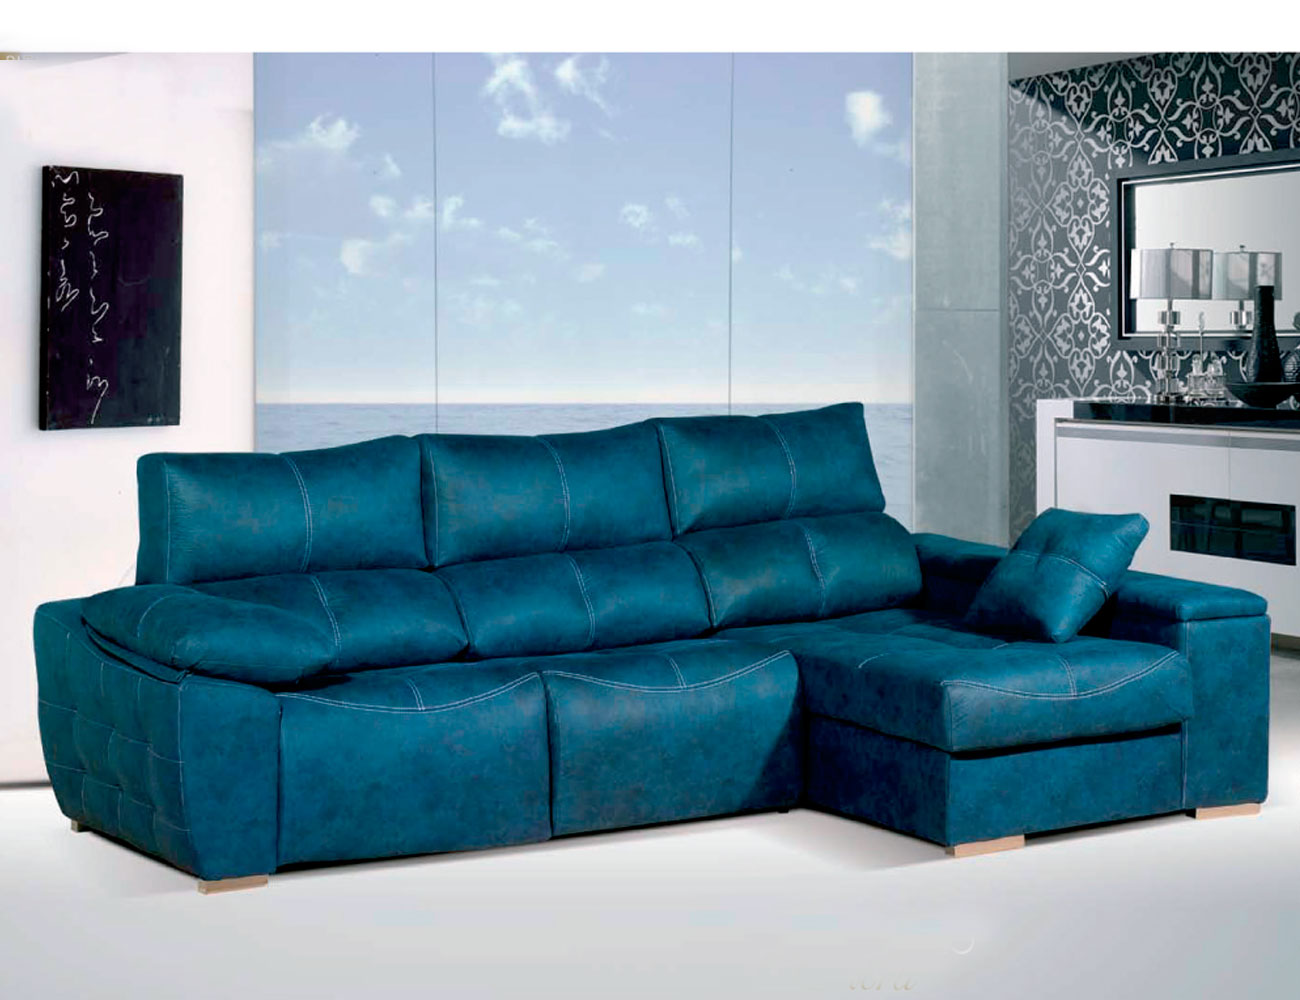 Sofa chaiselongue relax 2 motores anti manchas turquesa1